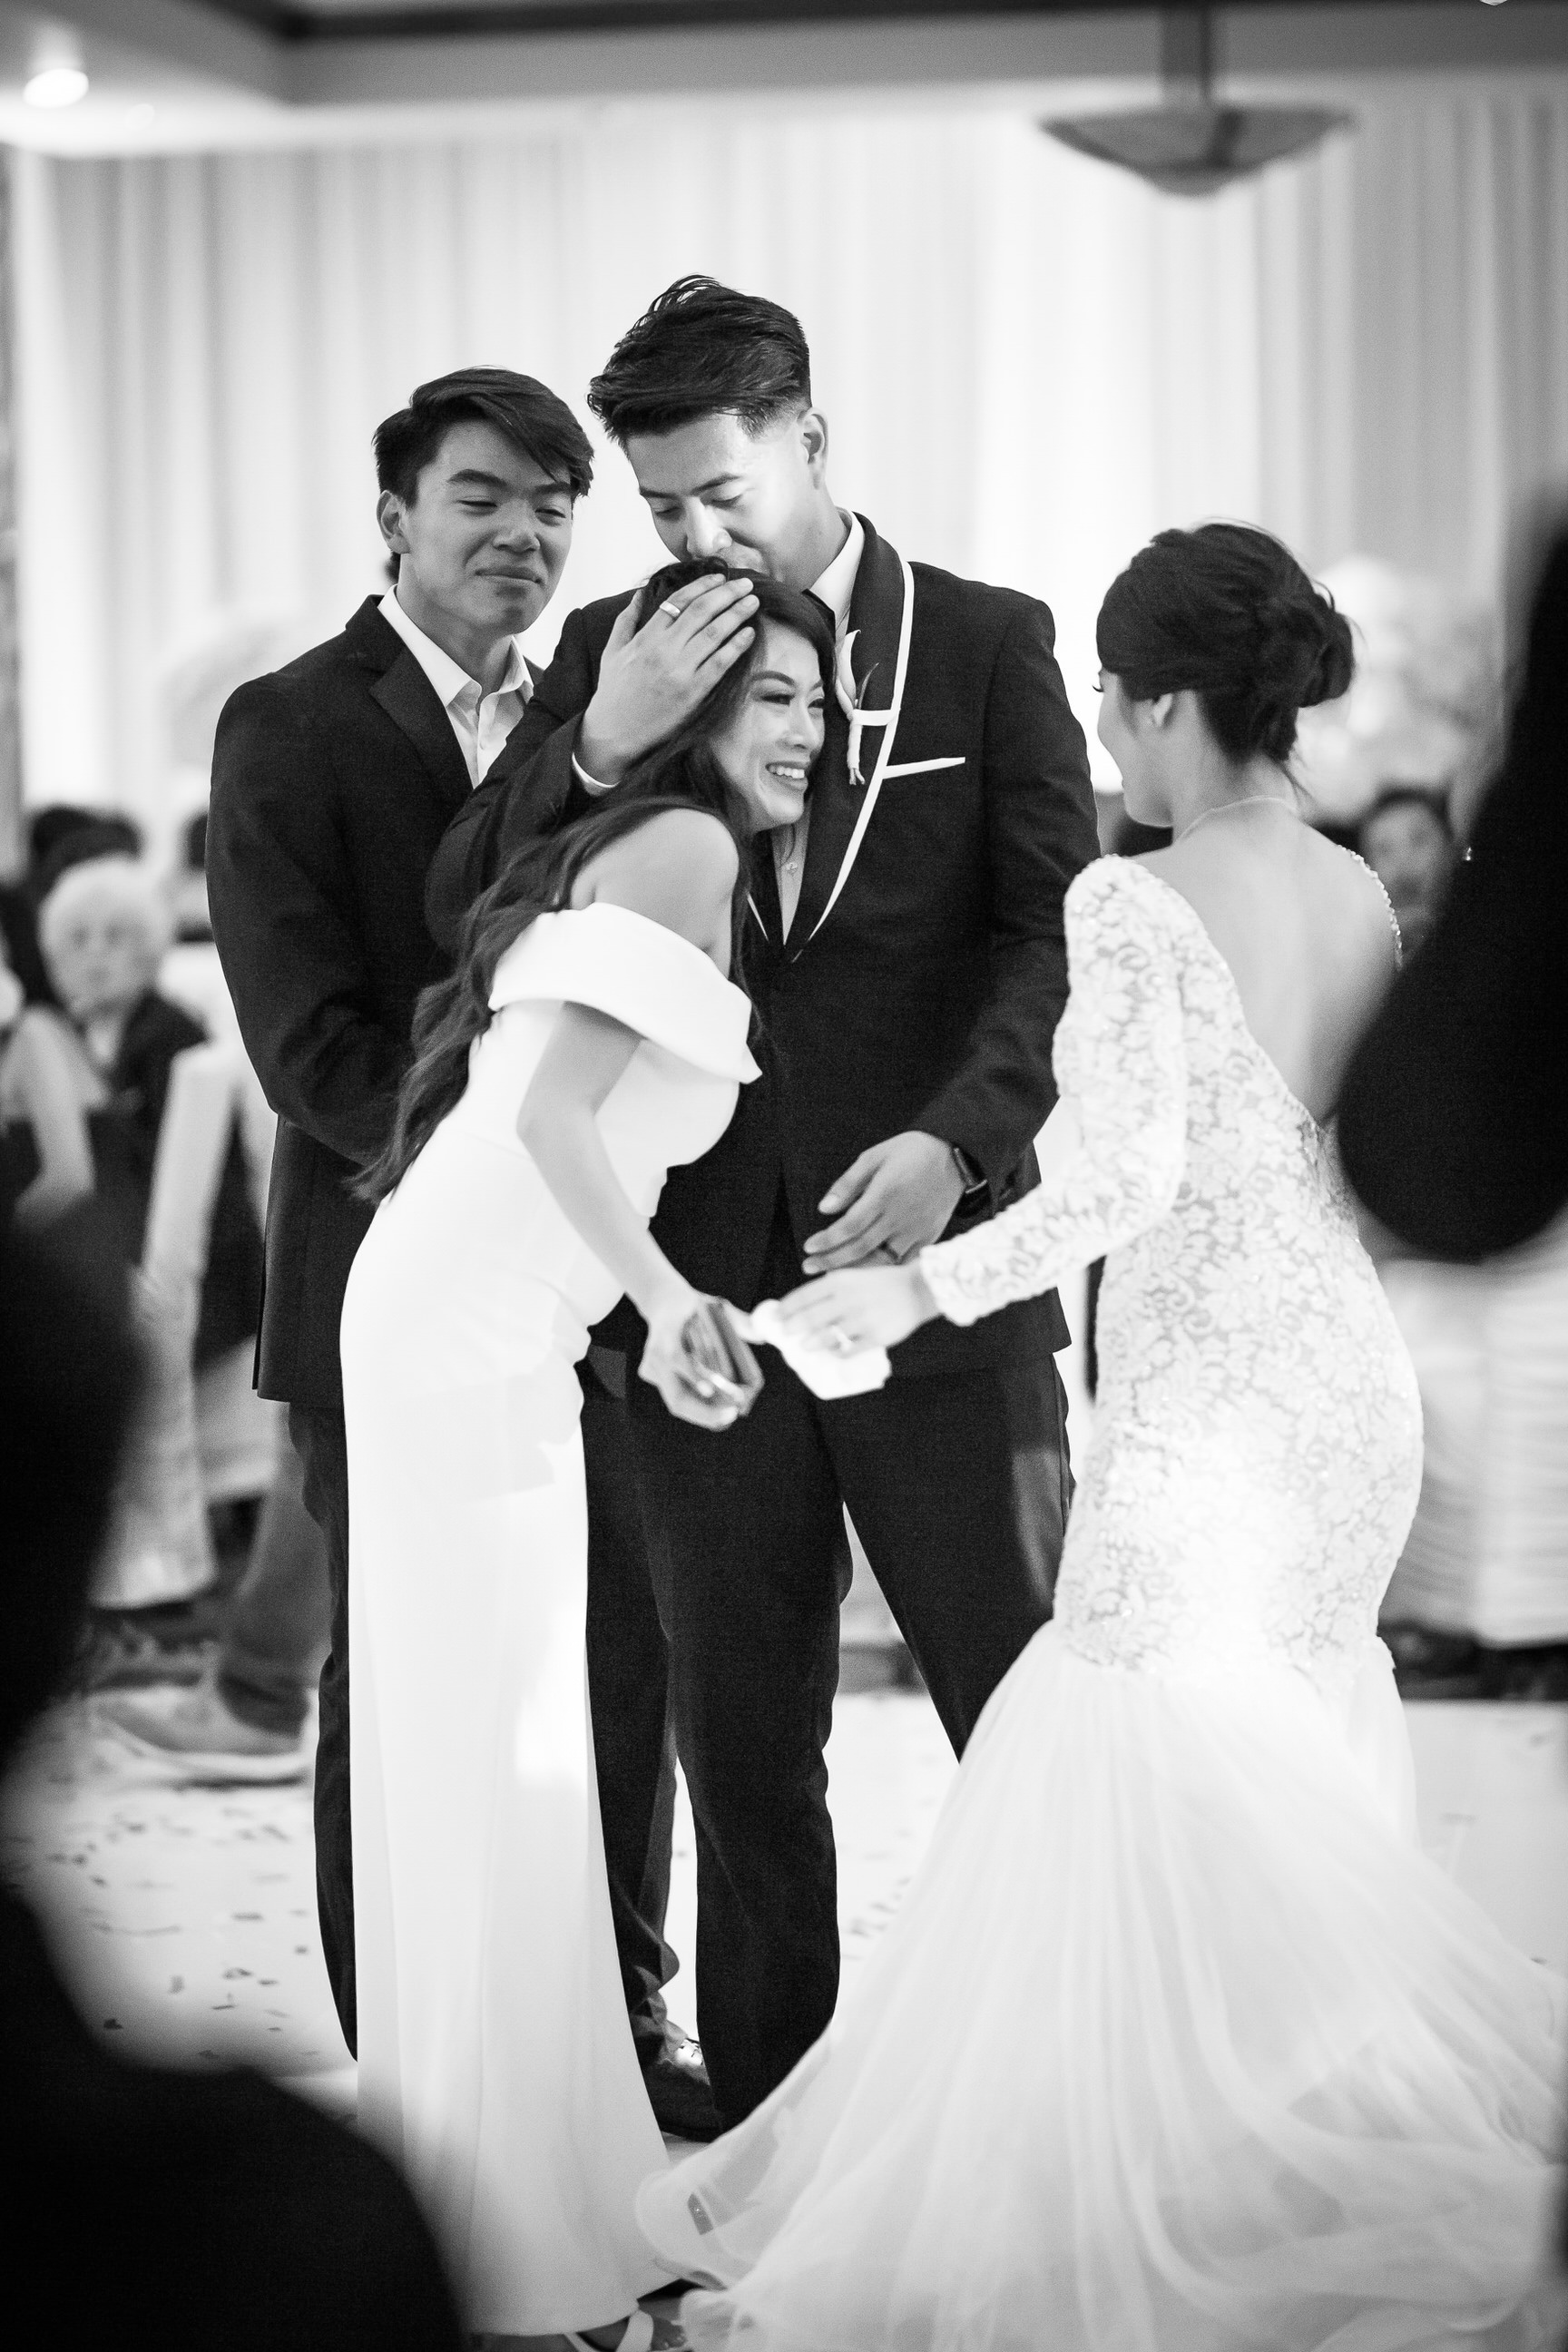 Dream_Wedding_Thanh_Thanh-4177.jpg